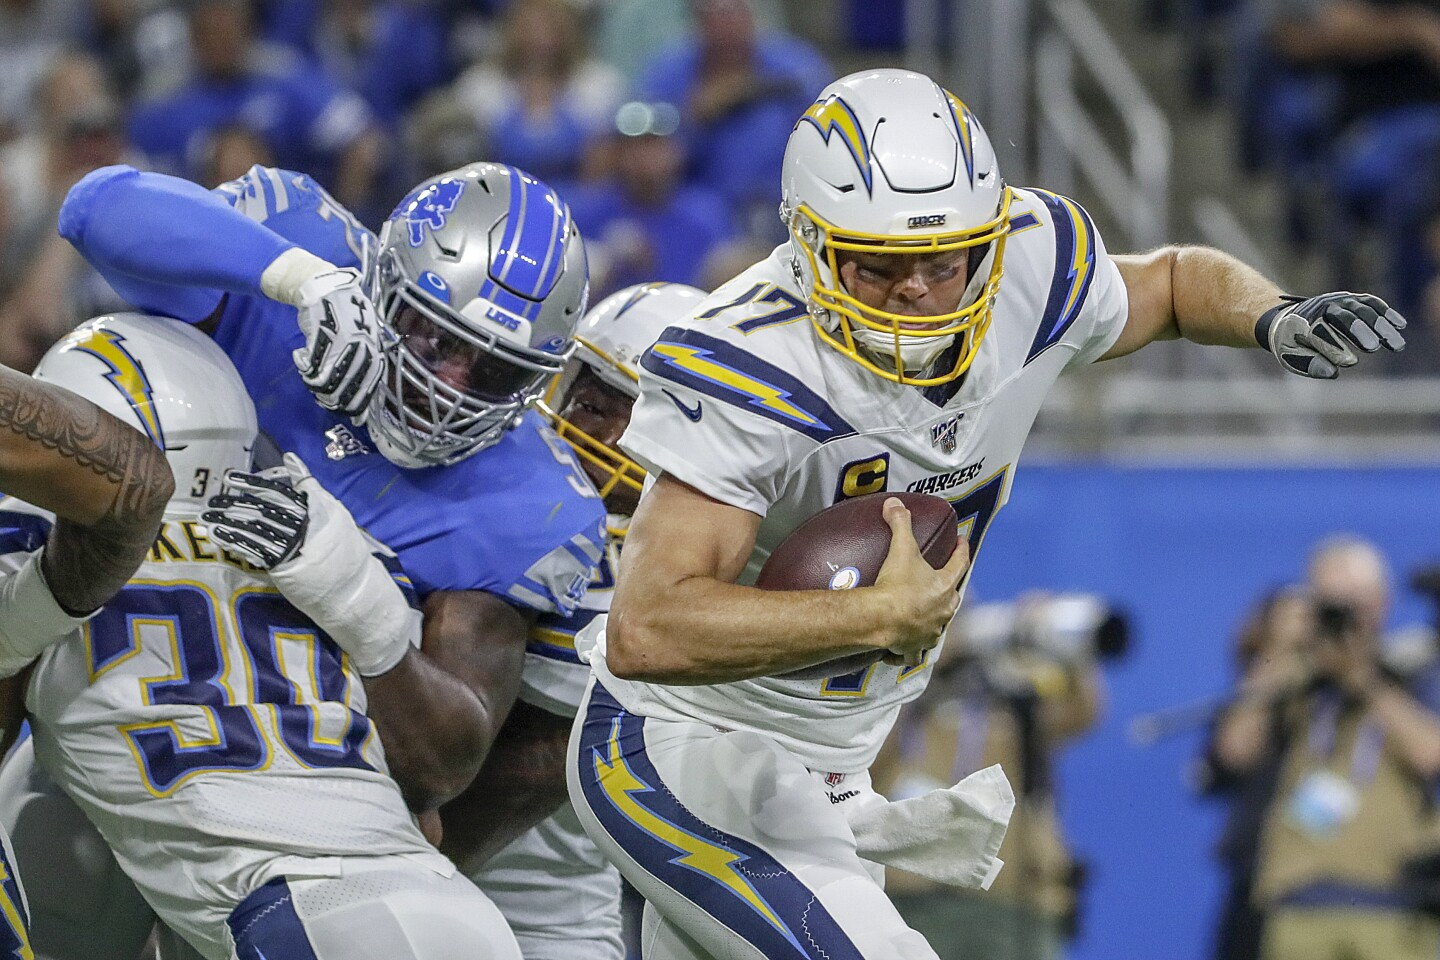 DETROIT, MICHIGAN, SUNDAY, SEPTEMBER 15, 2019 - Chargers quarterback Philip Rivers scrambles away from Lions linebacker Christian Jones during a third quarter drive at Ford Field. (Robert Gauthier/Los Angeles Times)